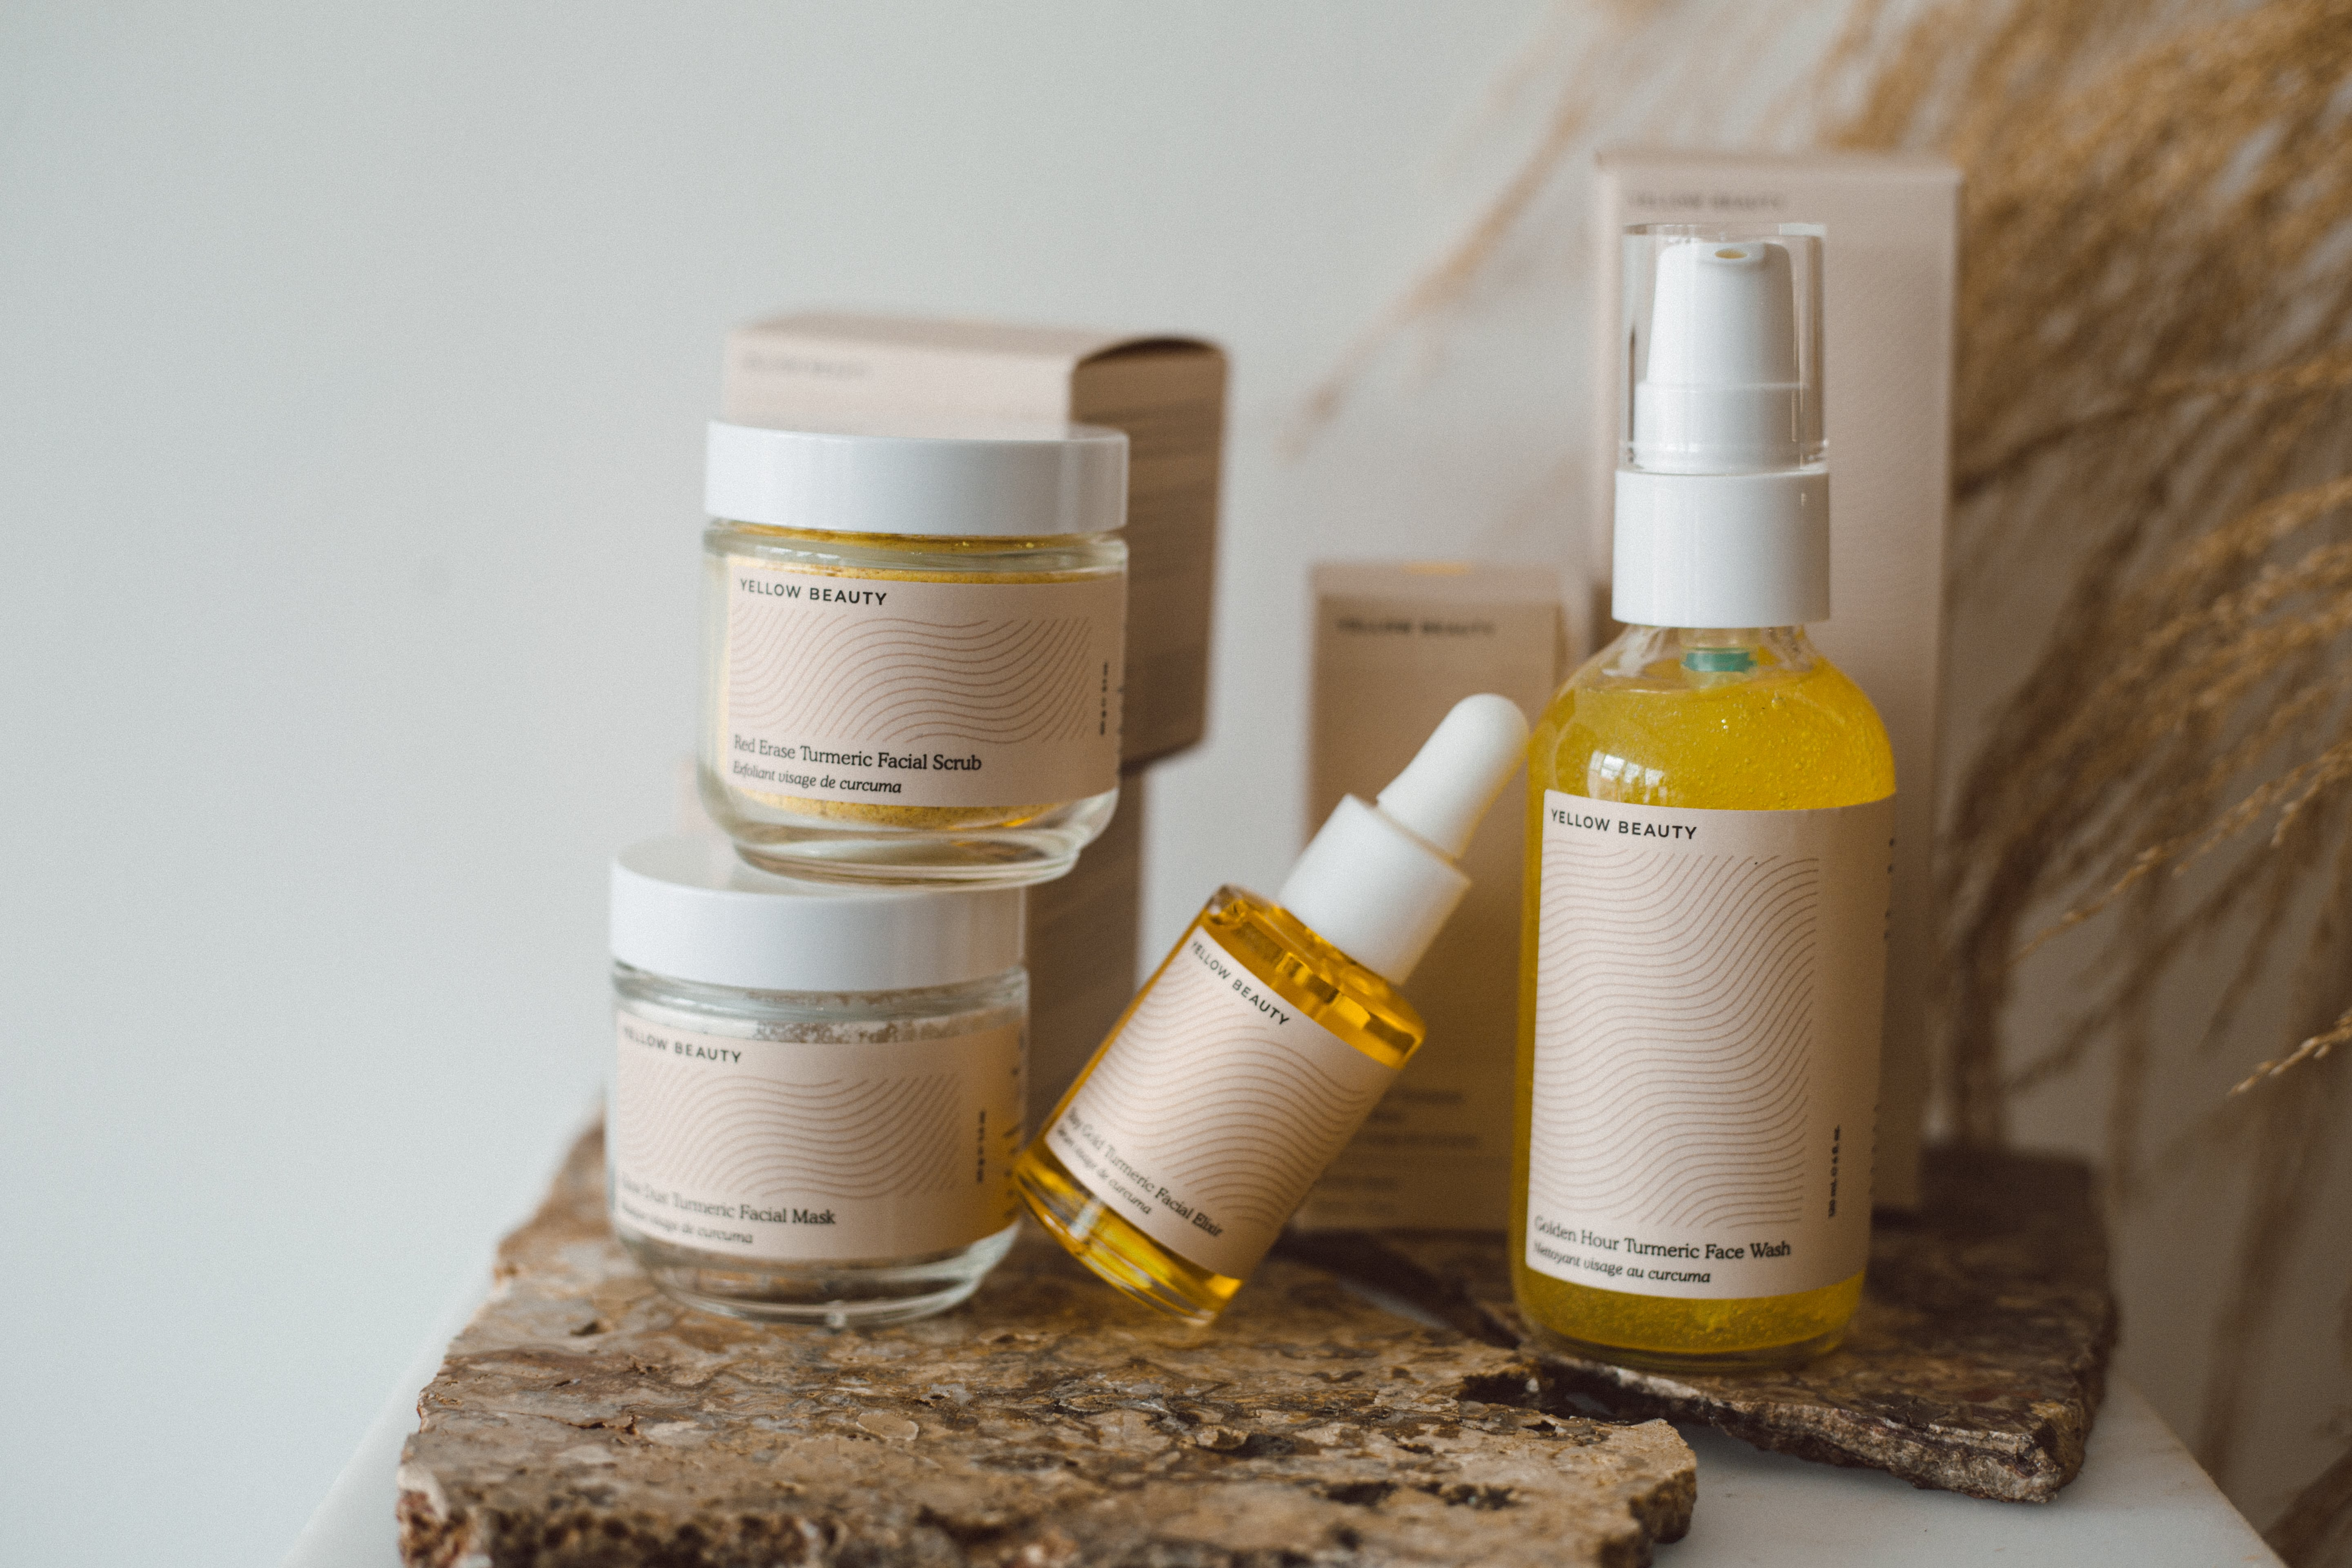 All our formulations give you deep hydration and long-lasting glow. Give them a go by taking 10% off your first purchase. Just sign up to our newsletter and we'll send over a discount code (we promise you'll fall in love with our emails!).